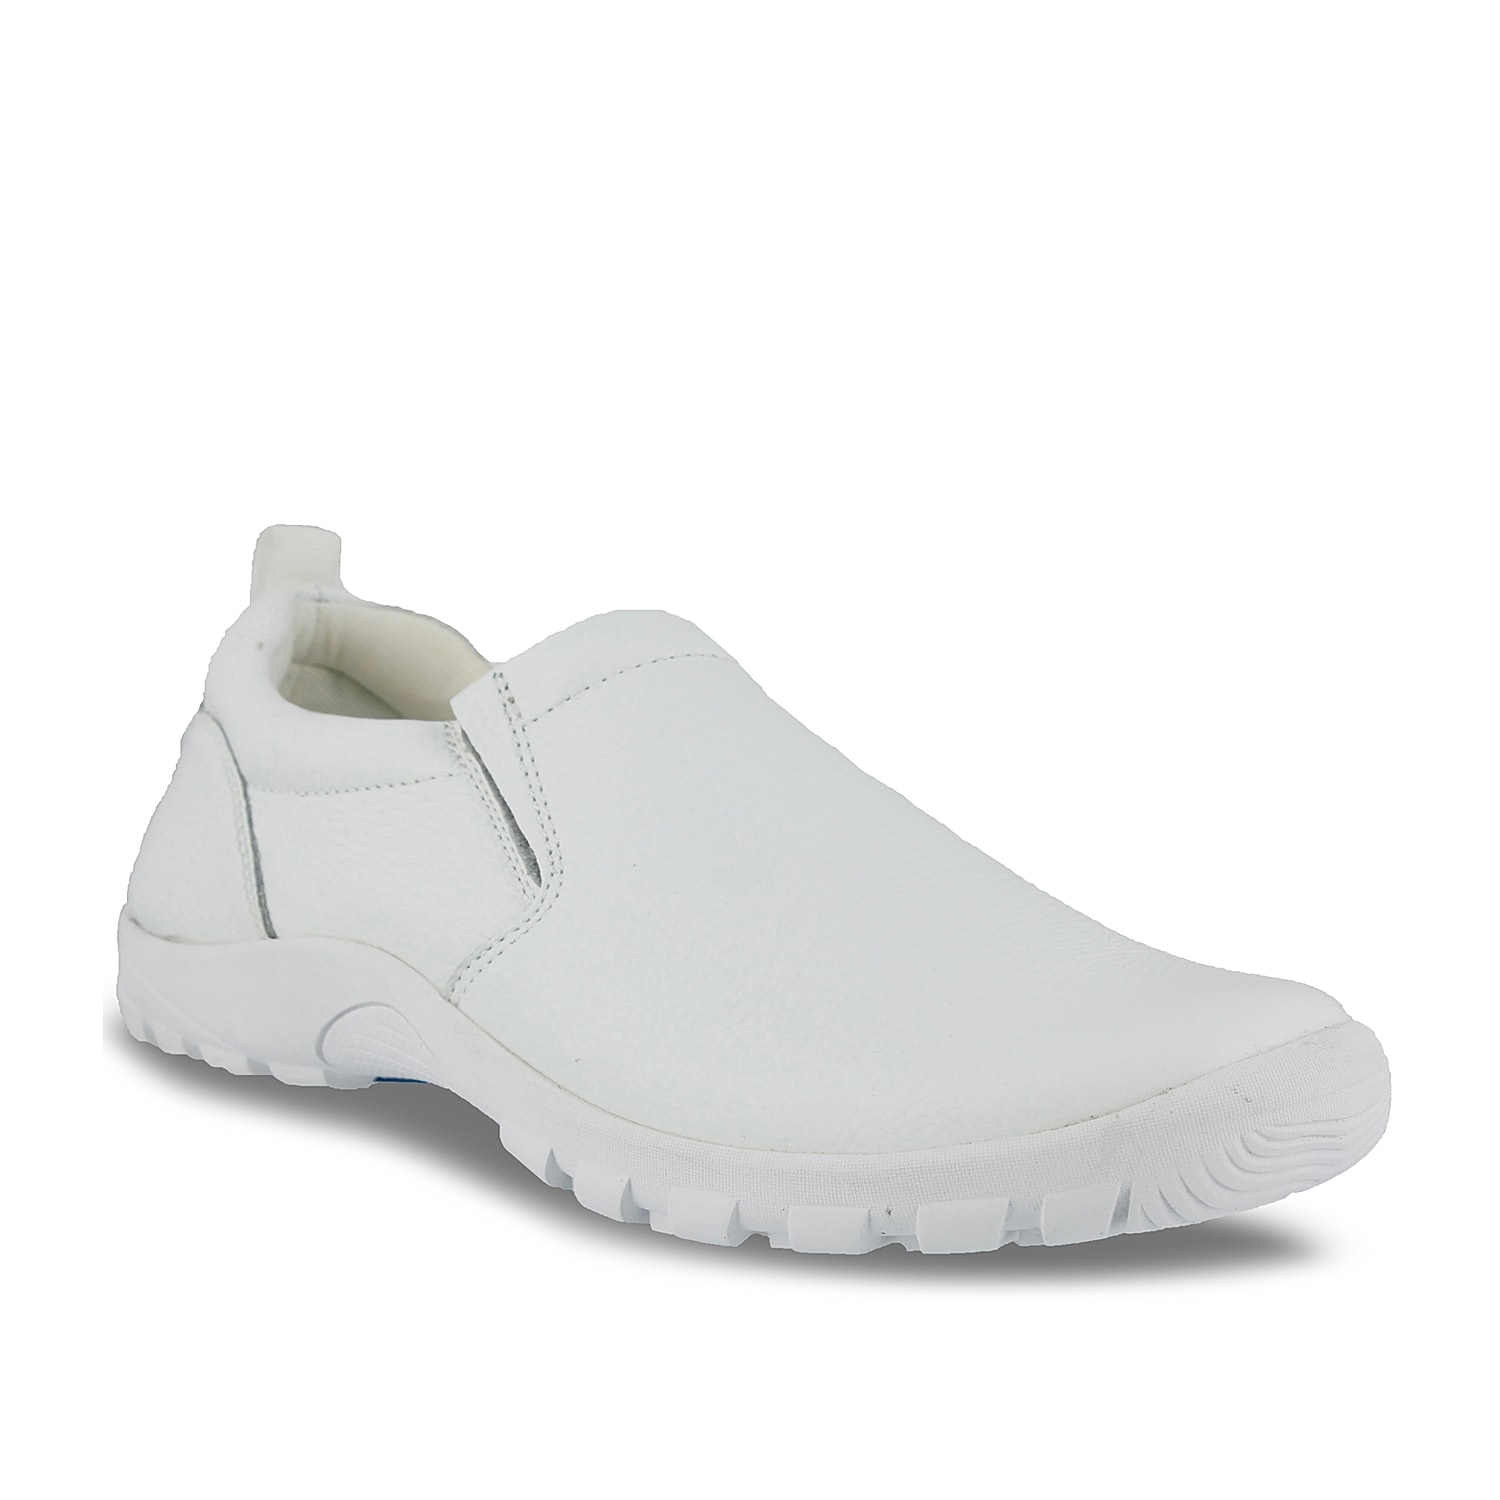 Step into easy casual style with the Beckham slip-on from Spring Step. This slip resistant leather shoe is perfect for work or everyday wear!